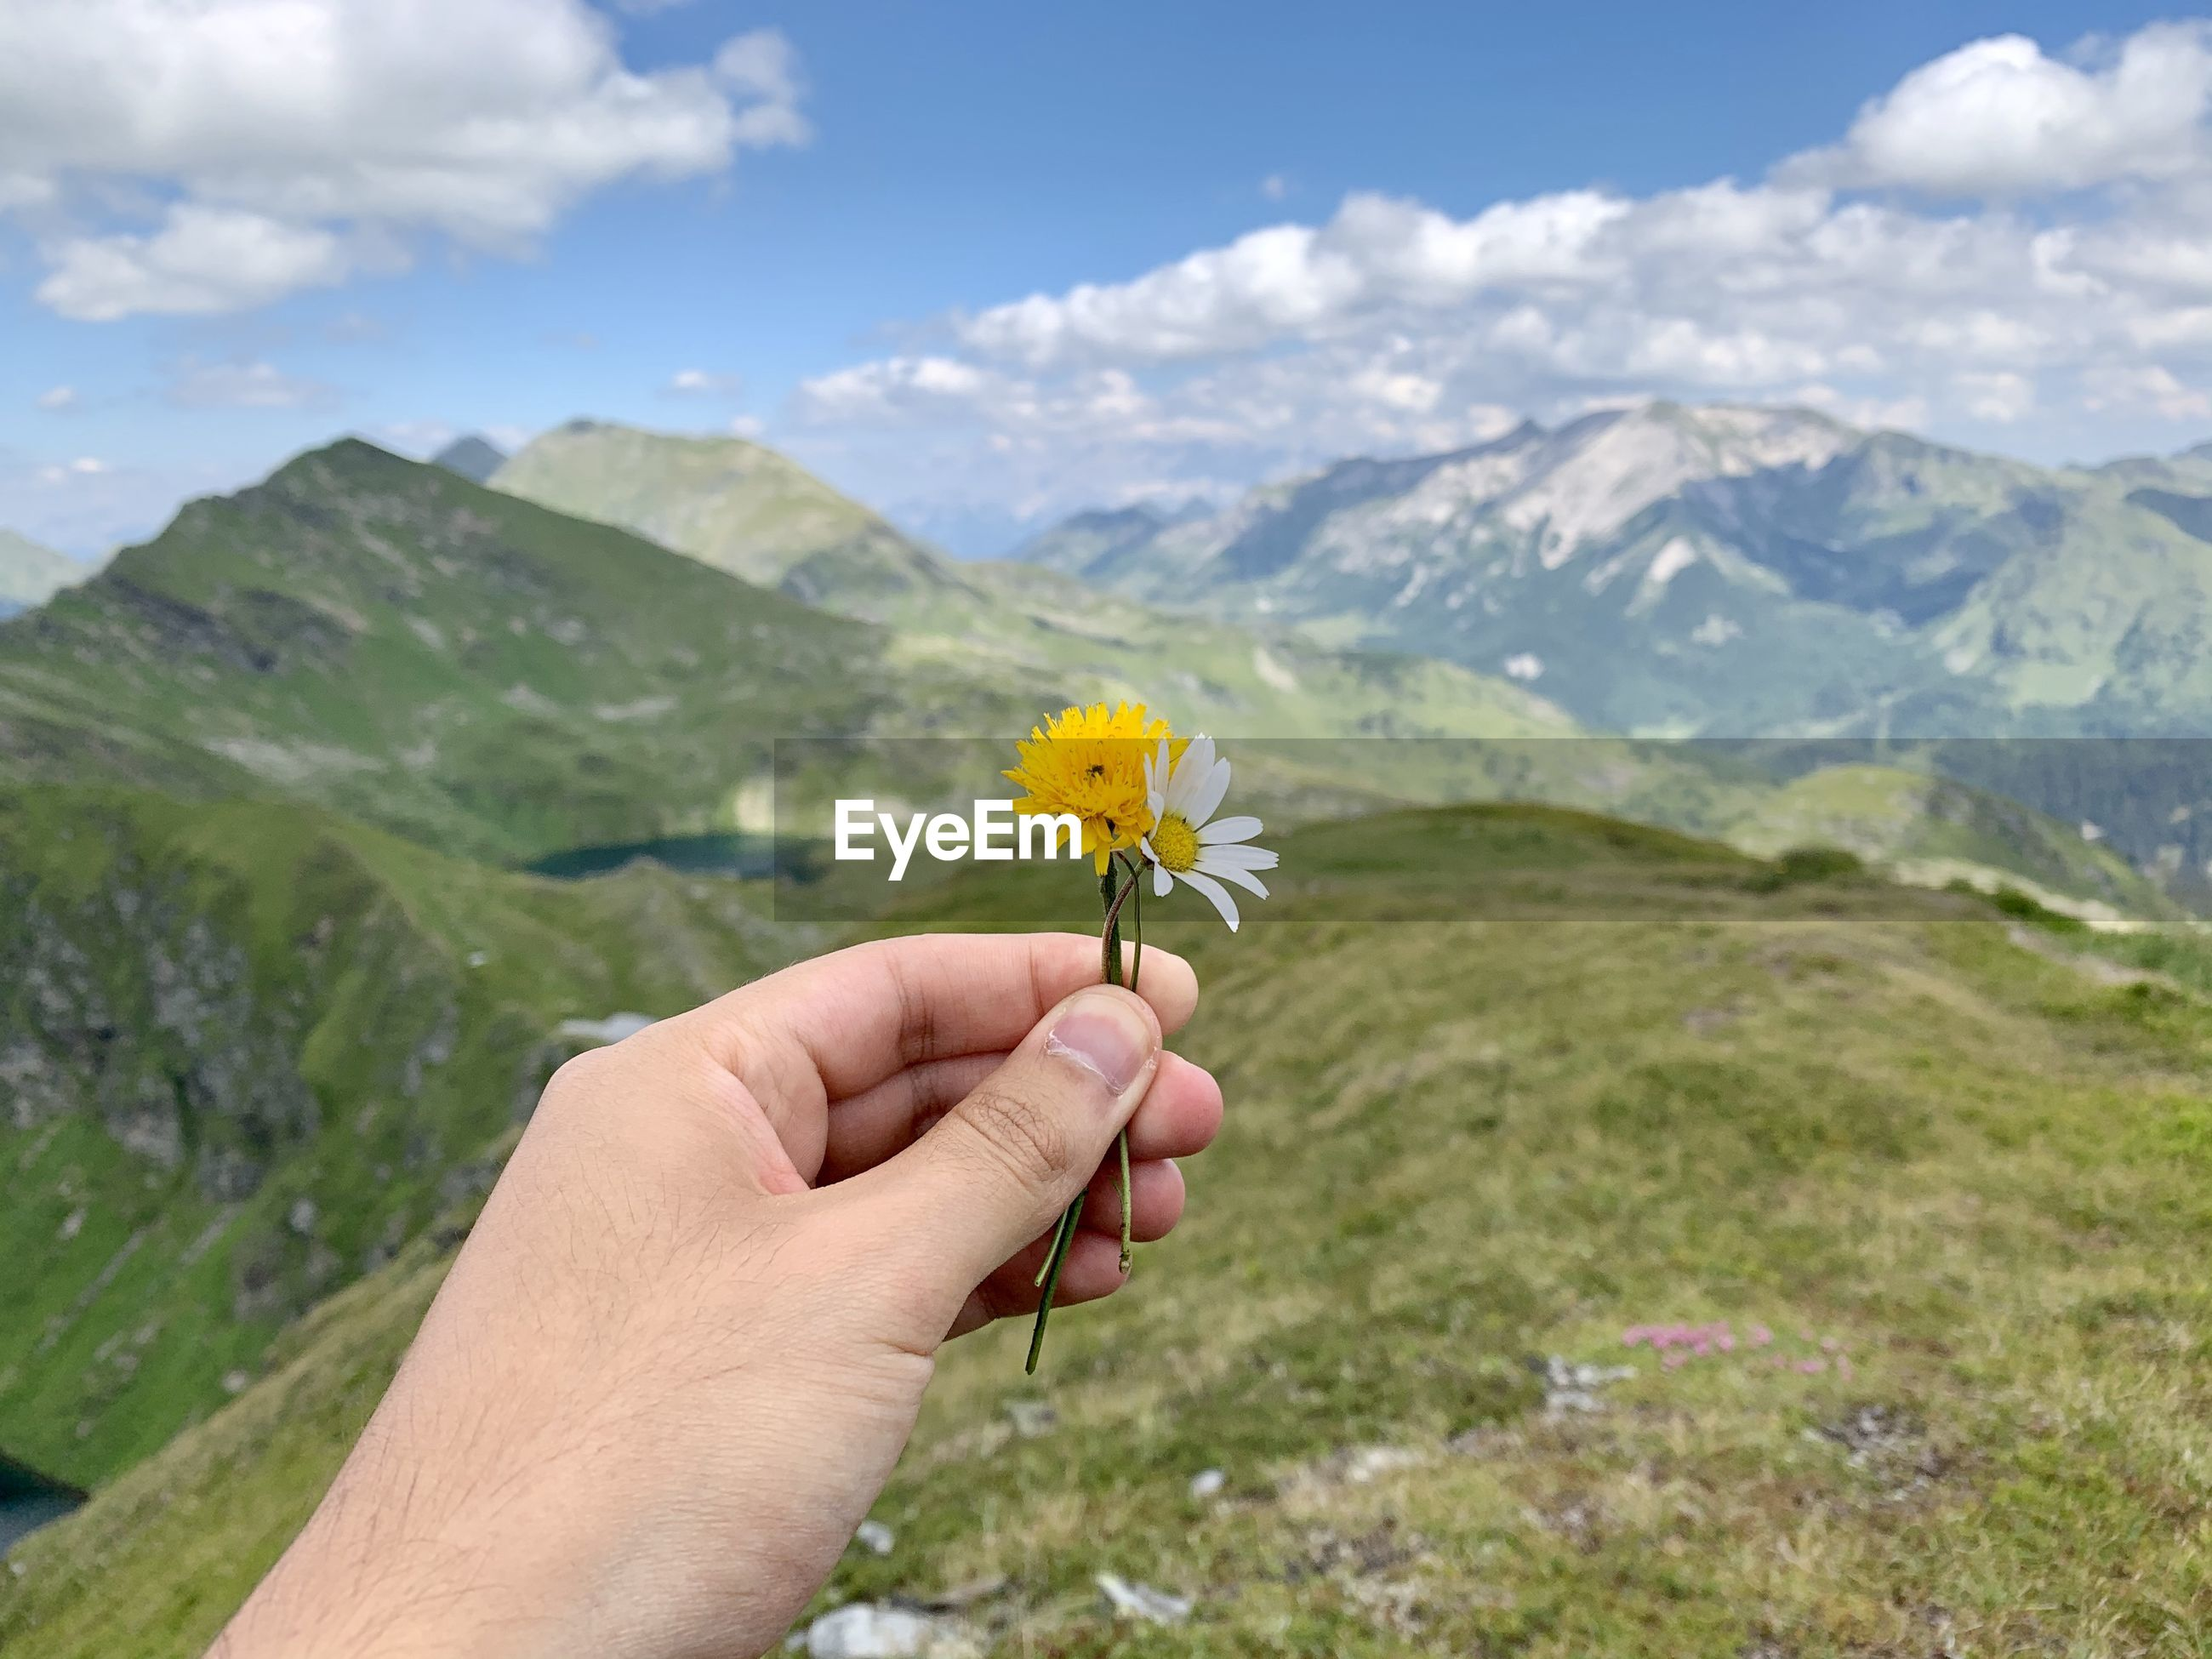 CROPPED HAND OF PERSON HOLDING YELLOW FLOWERING PLANT